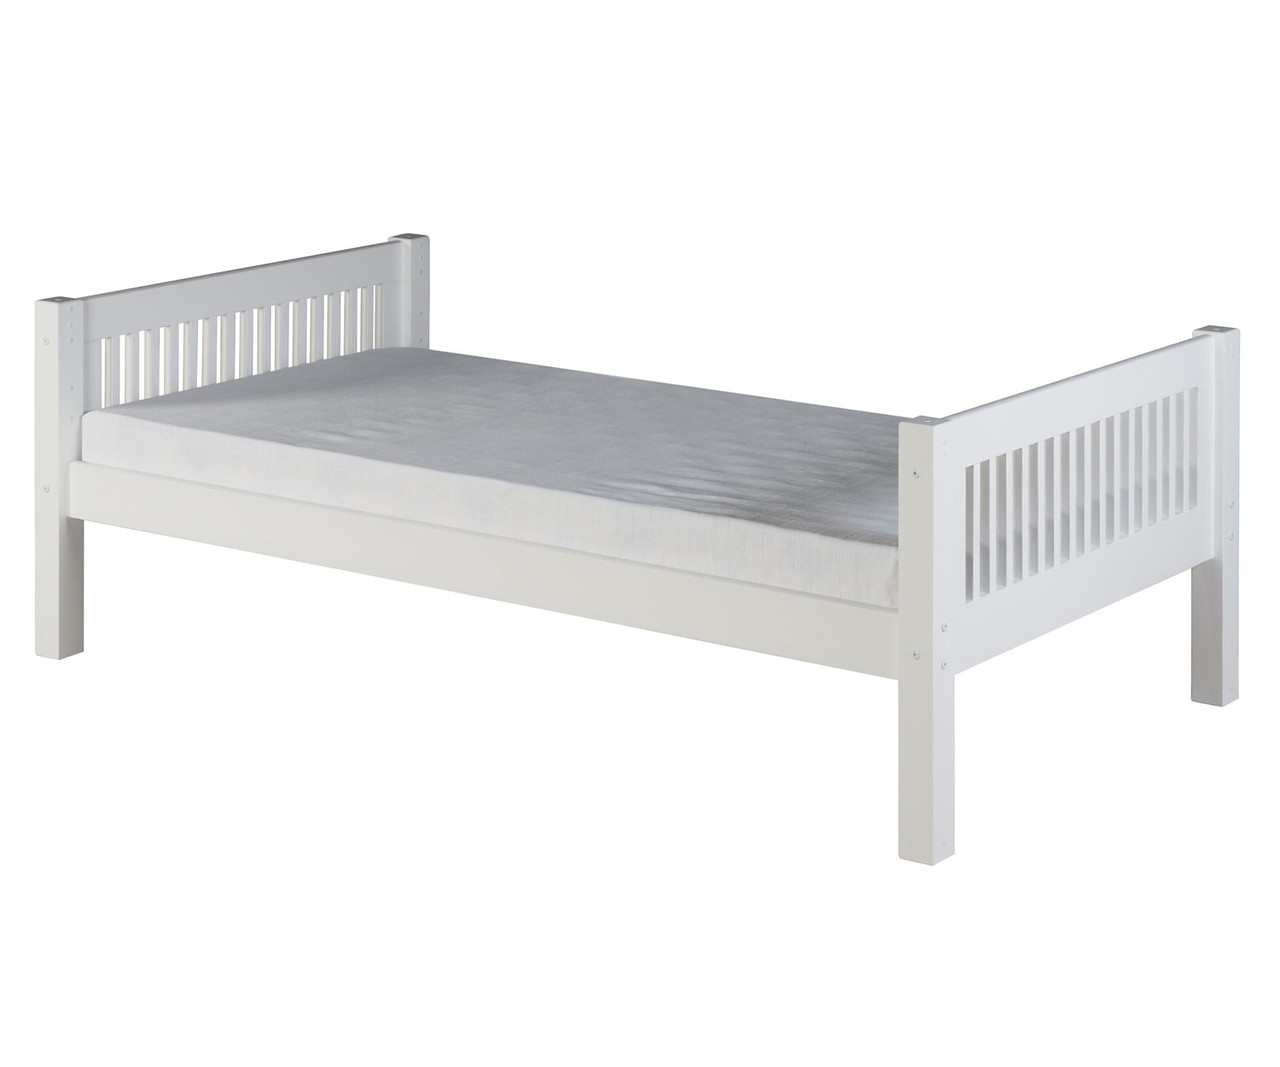 Camaflexi Twin Platform Bed In White Finish E113 Camaflexi Furniture Solid Wood Kids Furniture